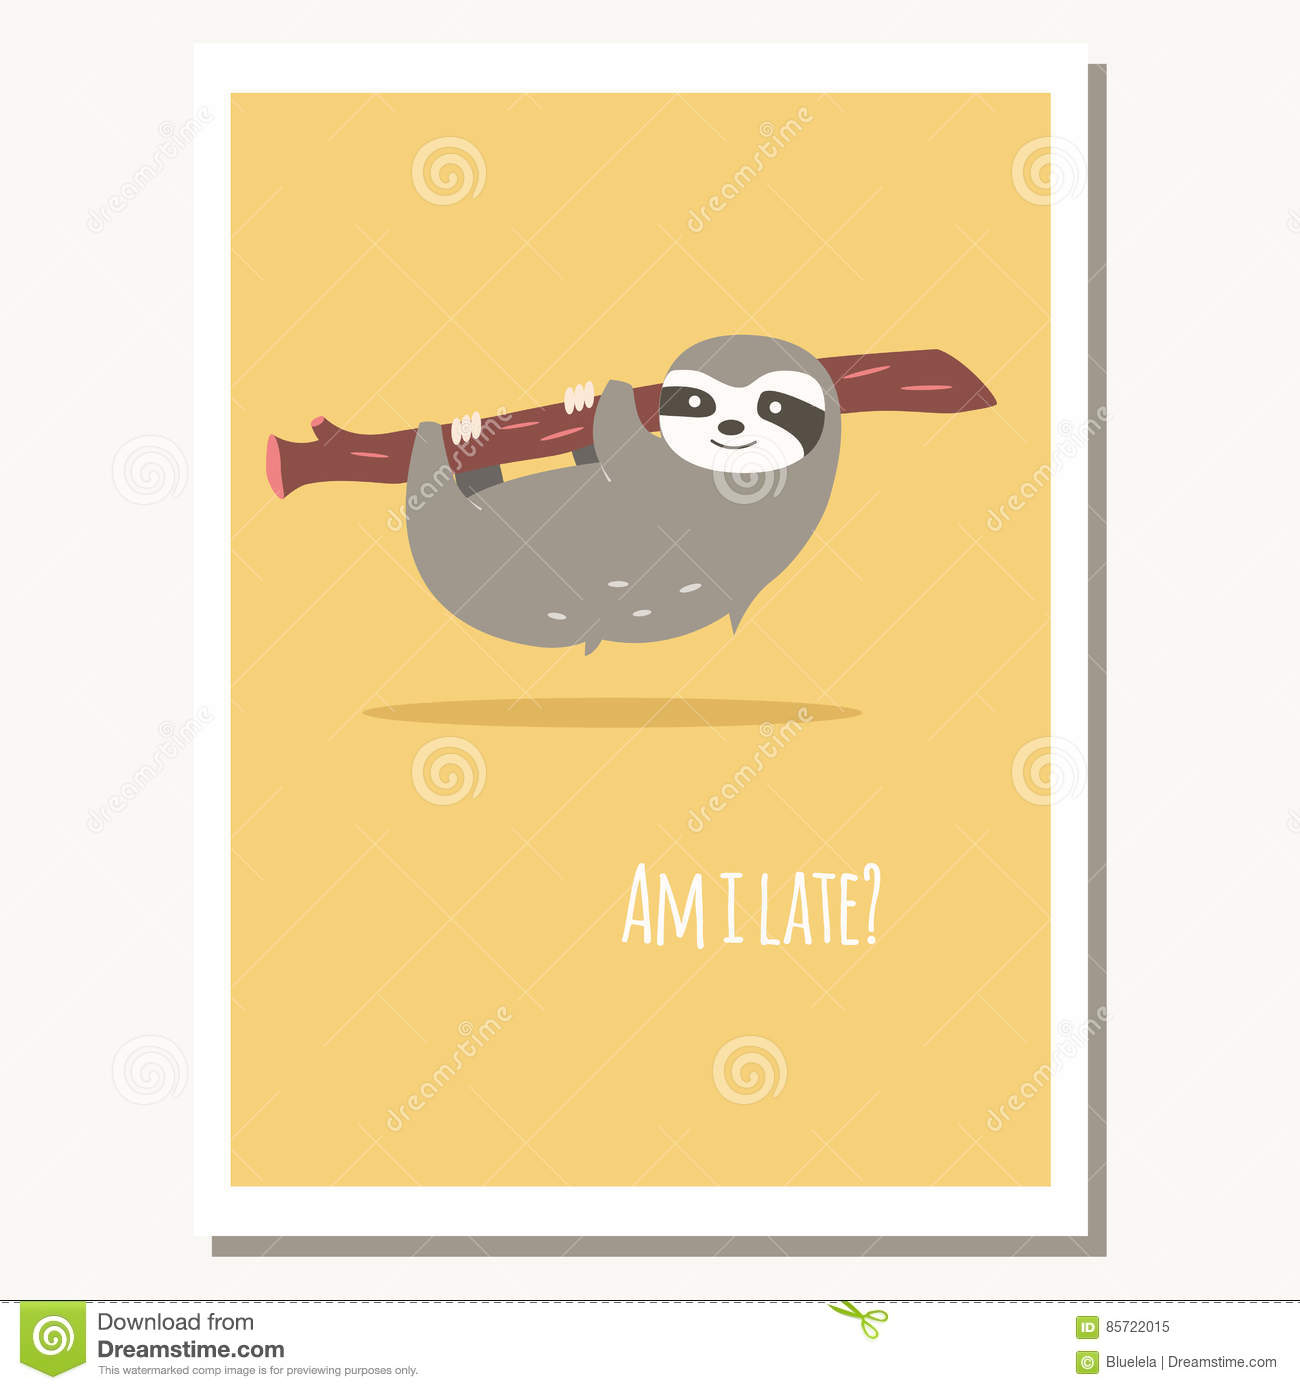 Greeting card with cute lazy sloth and text message stock vector download greeting card with cute lazy sloth and text message stock vector illustration of drawn m4hsunfo